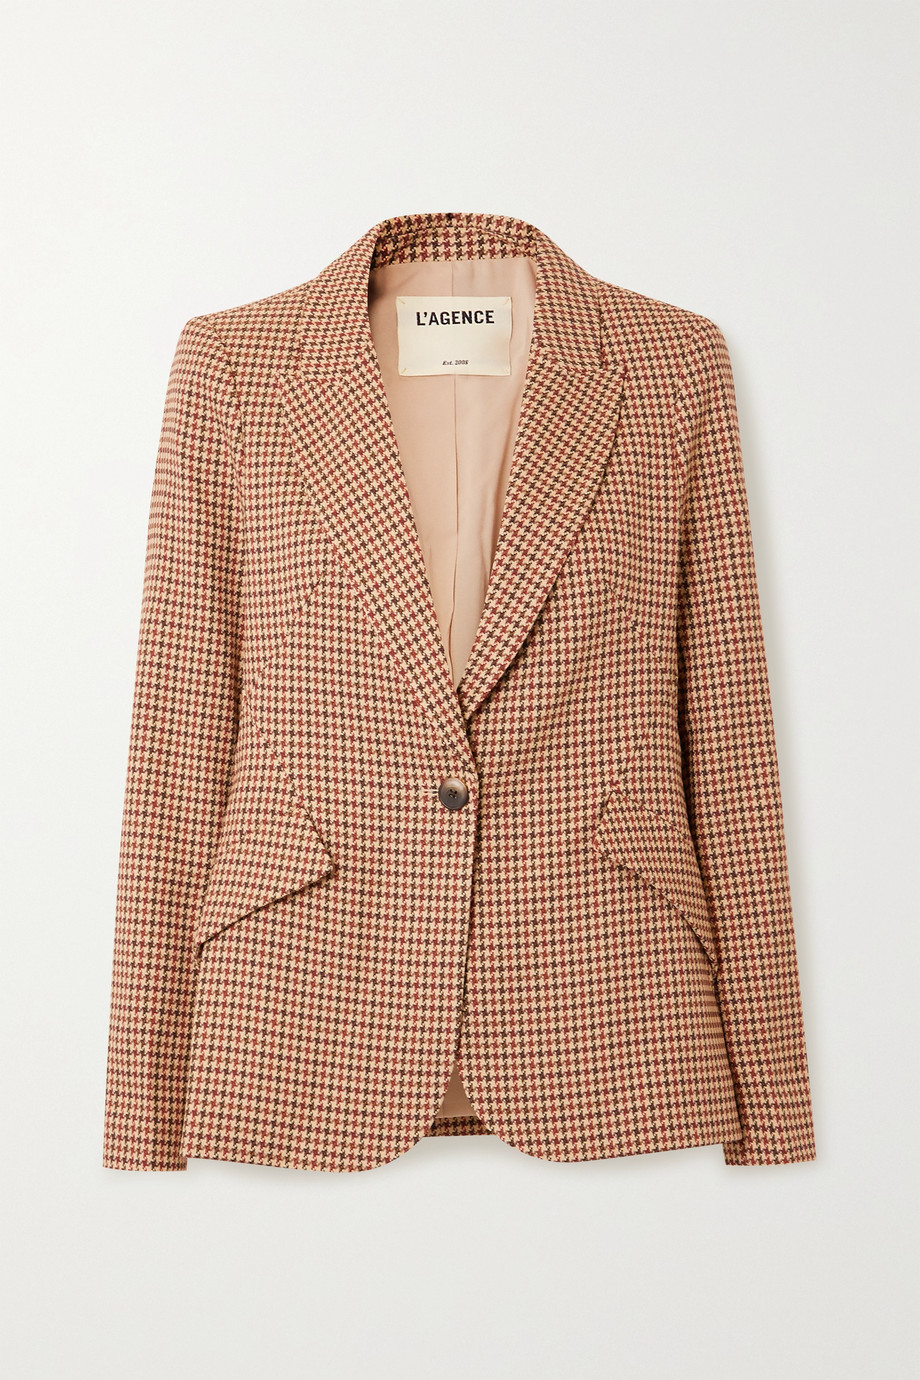 L'Agence Chamberlain houndstooth tweed blazer